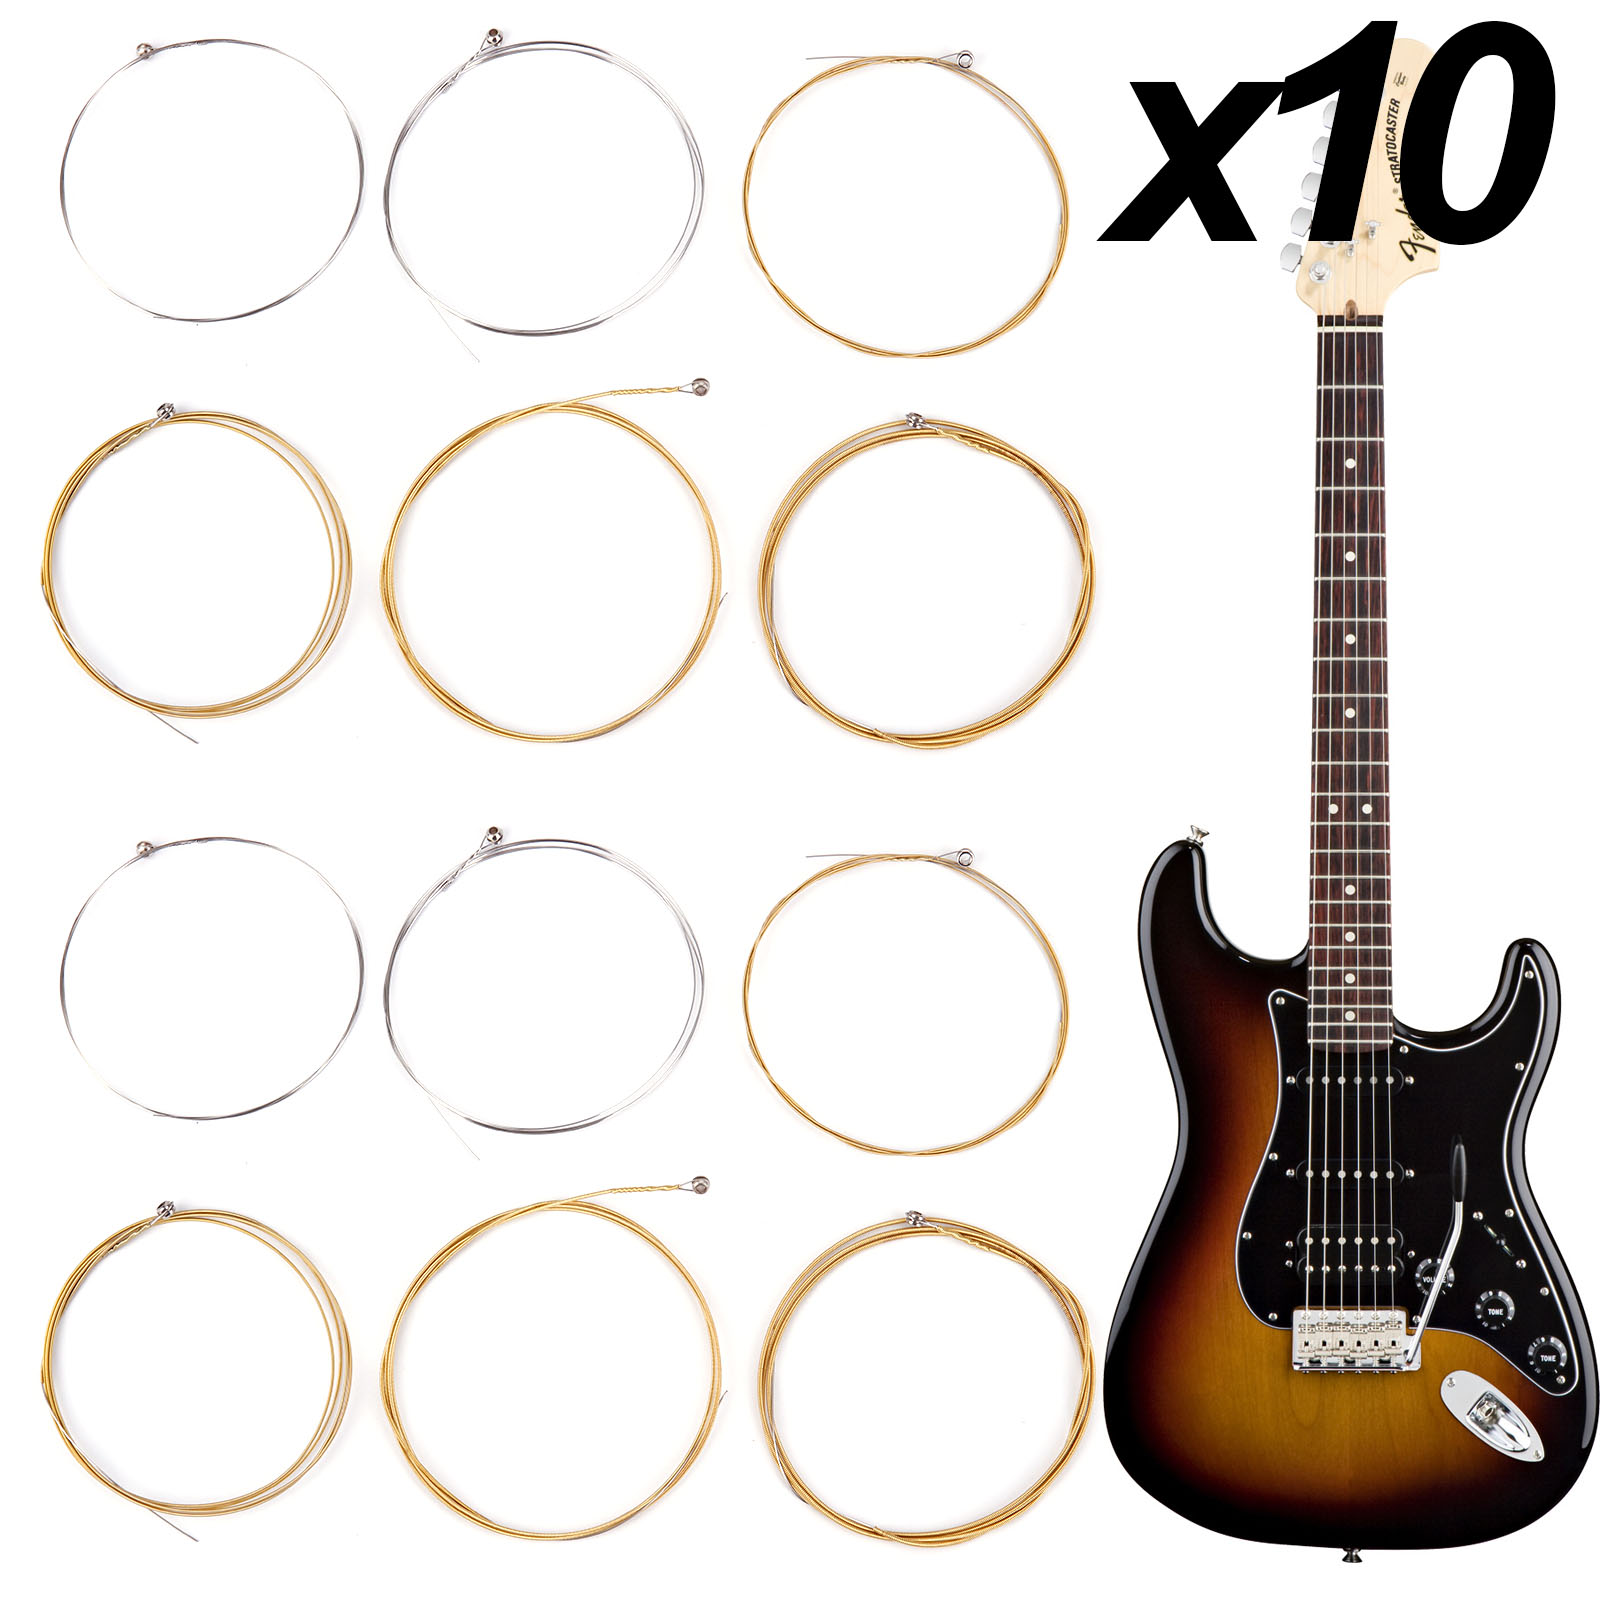 20 sets 120pcs acoustic guitar steel strings gauge accessories replacement ebay. Black Bedroom Furniture Sets. Home Design Ideas